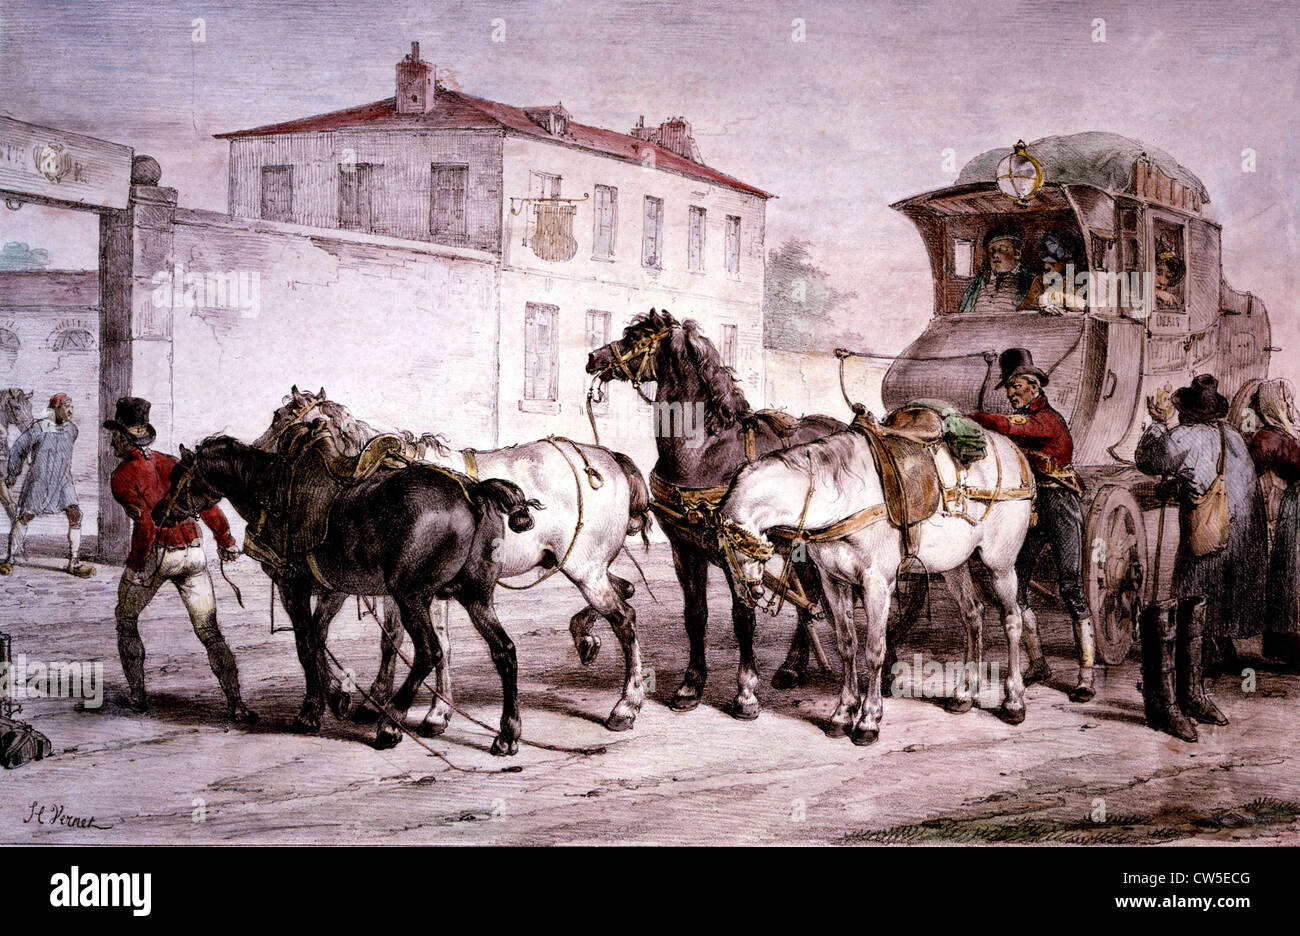 Lithography by Delpech after Vernet: Post house - Stock Image